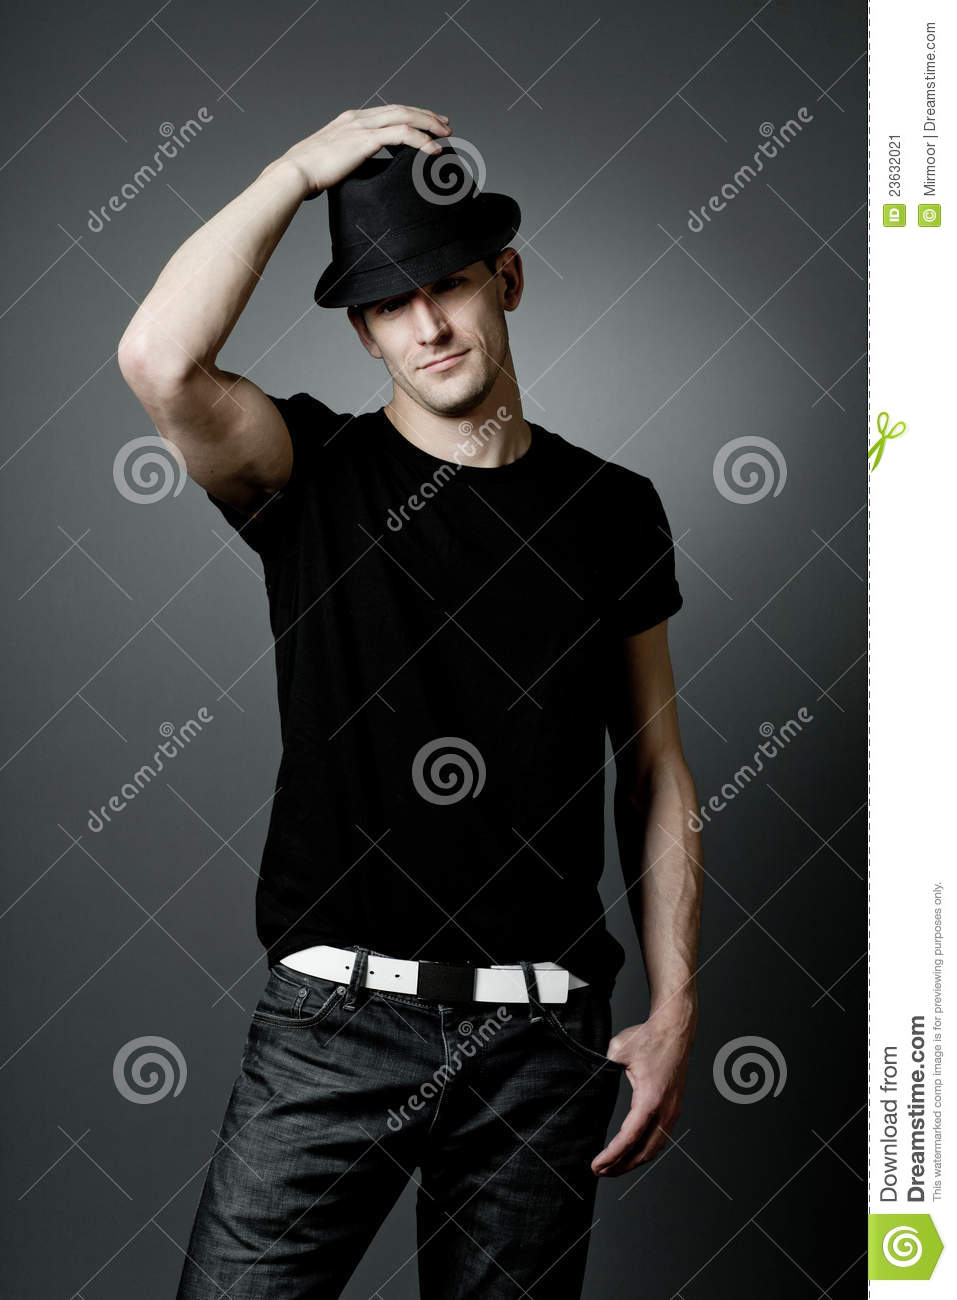 cb649d2343b Man Posing In Black T-shirt And Black Hat. Stock Image - Image of ...